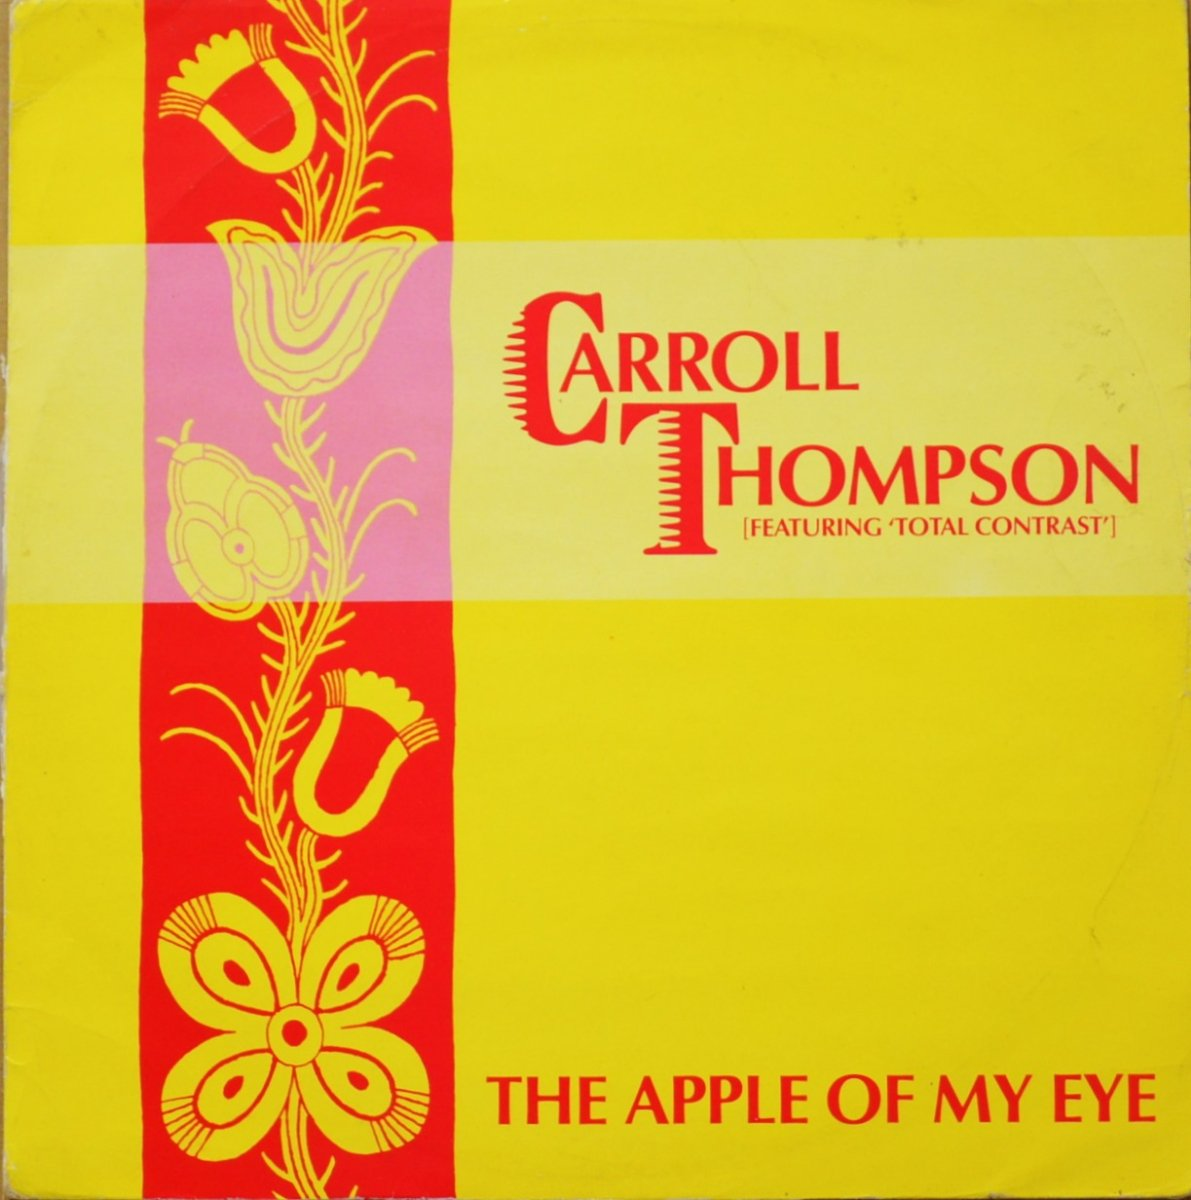 CARROLL THOMPSON FEATURING TOTAL CONTRAST / THE APPLE OF MY EYE / SONGWRITERS CRAMP (12